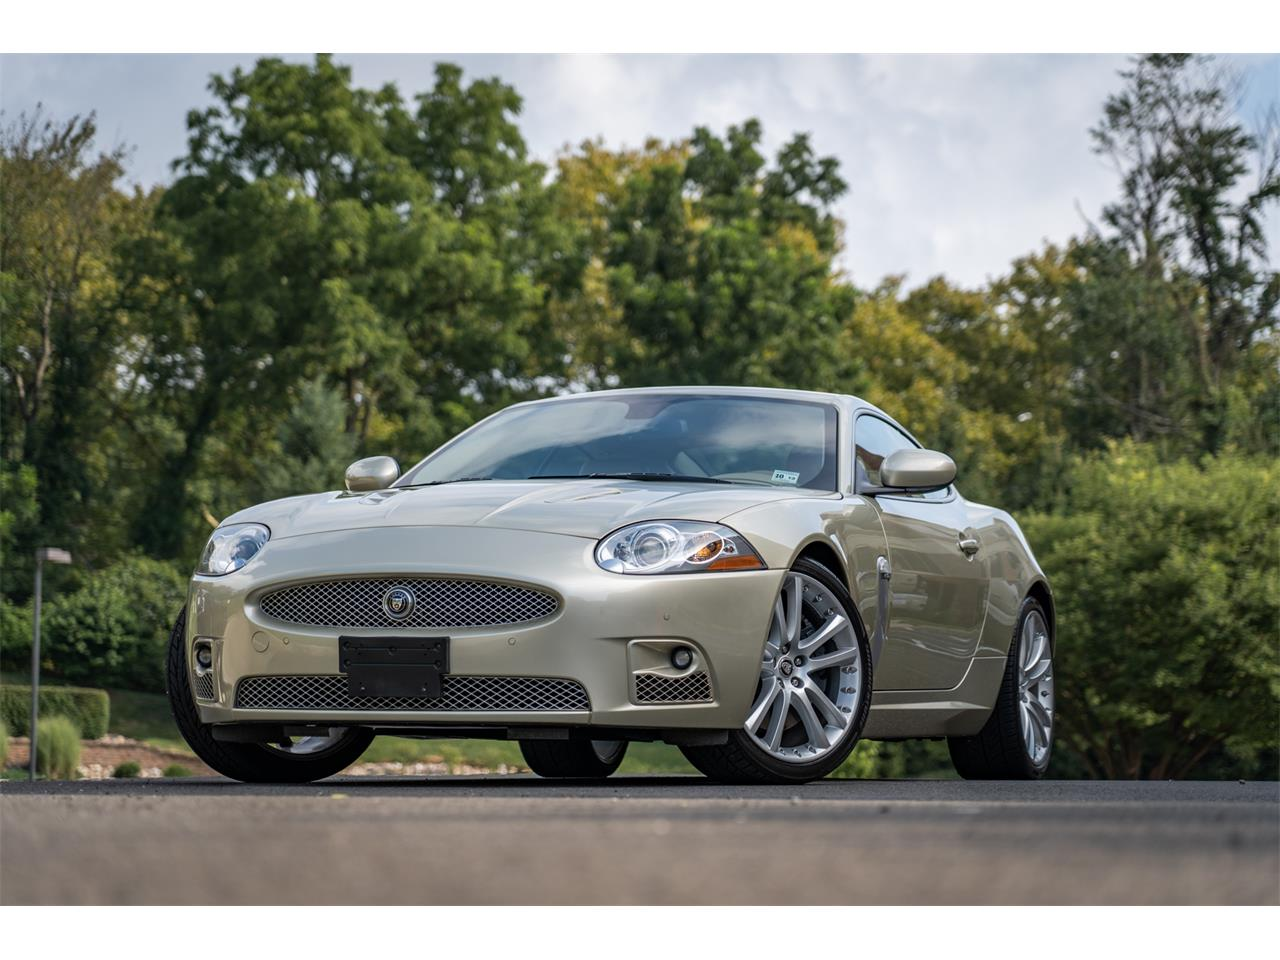 Large Picture of 2008 Jaguar XKR located in Doylestown Pennsylvania Auction Vehicle - QQG3